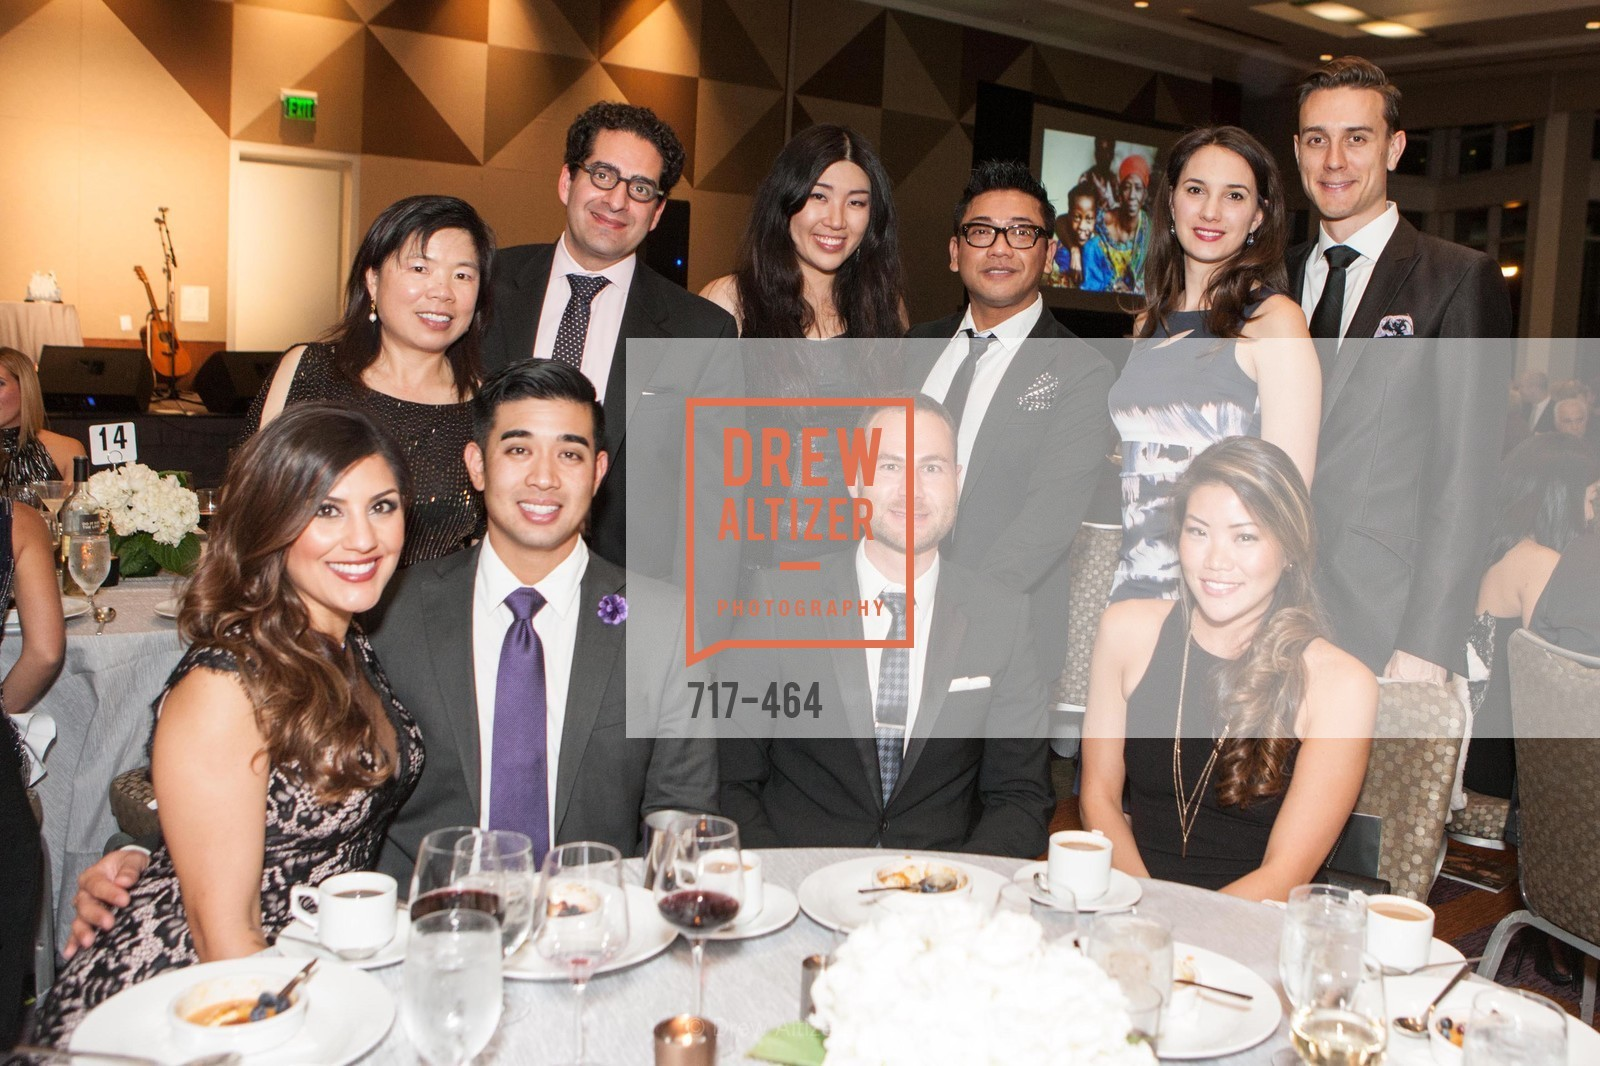 Group Photo, Operation Smile Presents THE SAN FRANCISCO 2015 SMILE GALA, InterContinental Hotel, November 7th, 2015,Drew Altizer, Drew Altizer Photography, full-service agency, private events, San Francisco photographer, photographer california